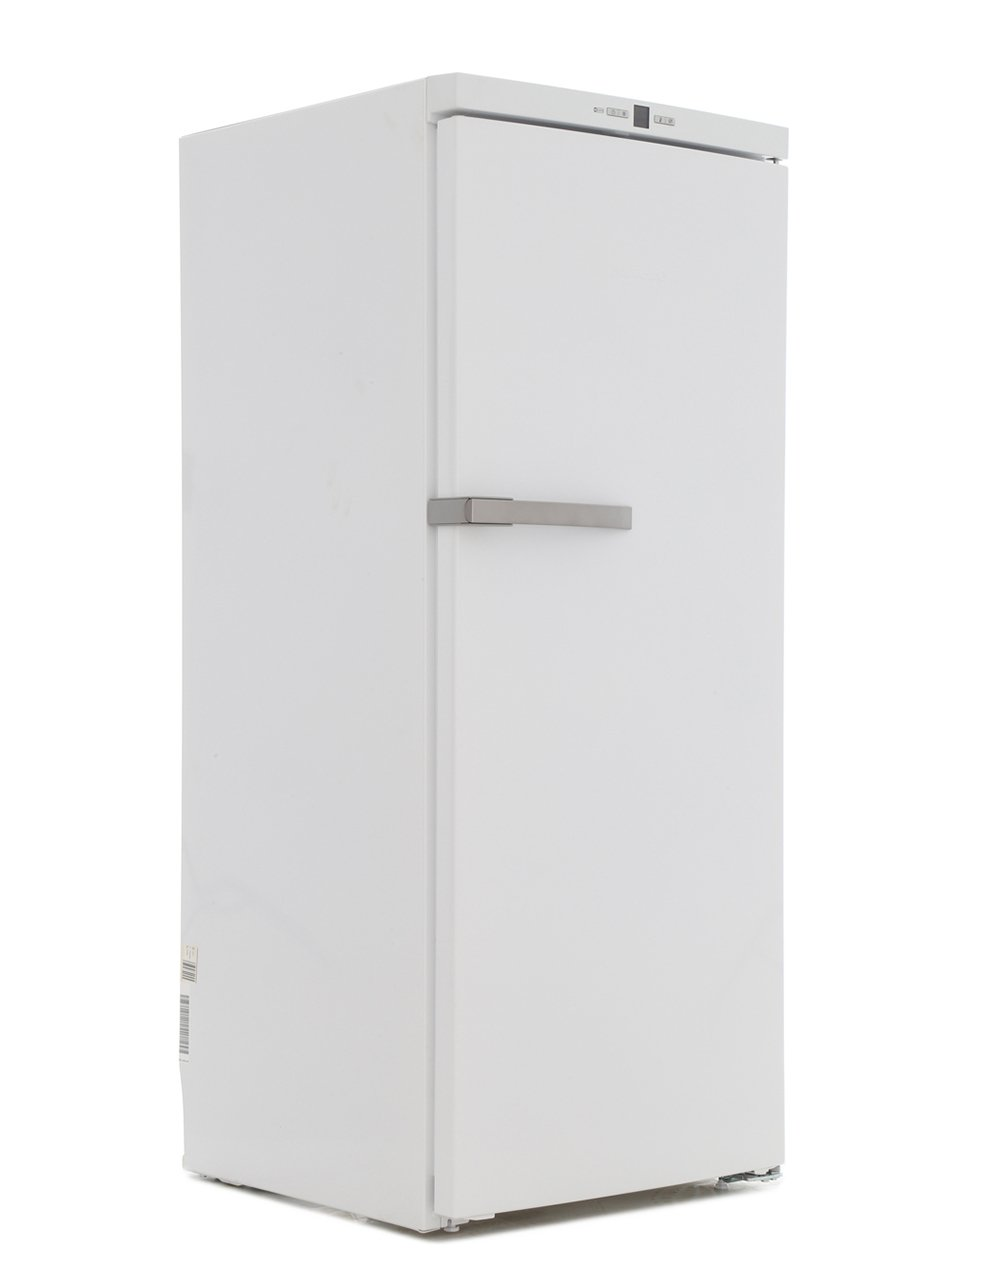 Miele FN24062 White Frost Free Tall Freezer